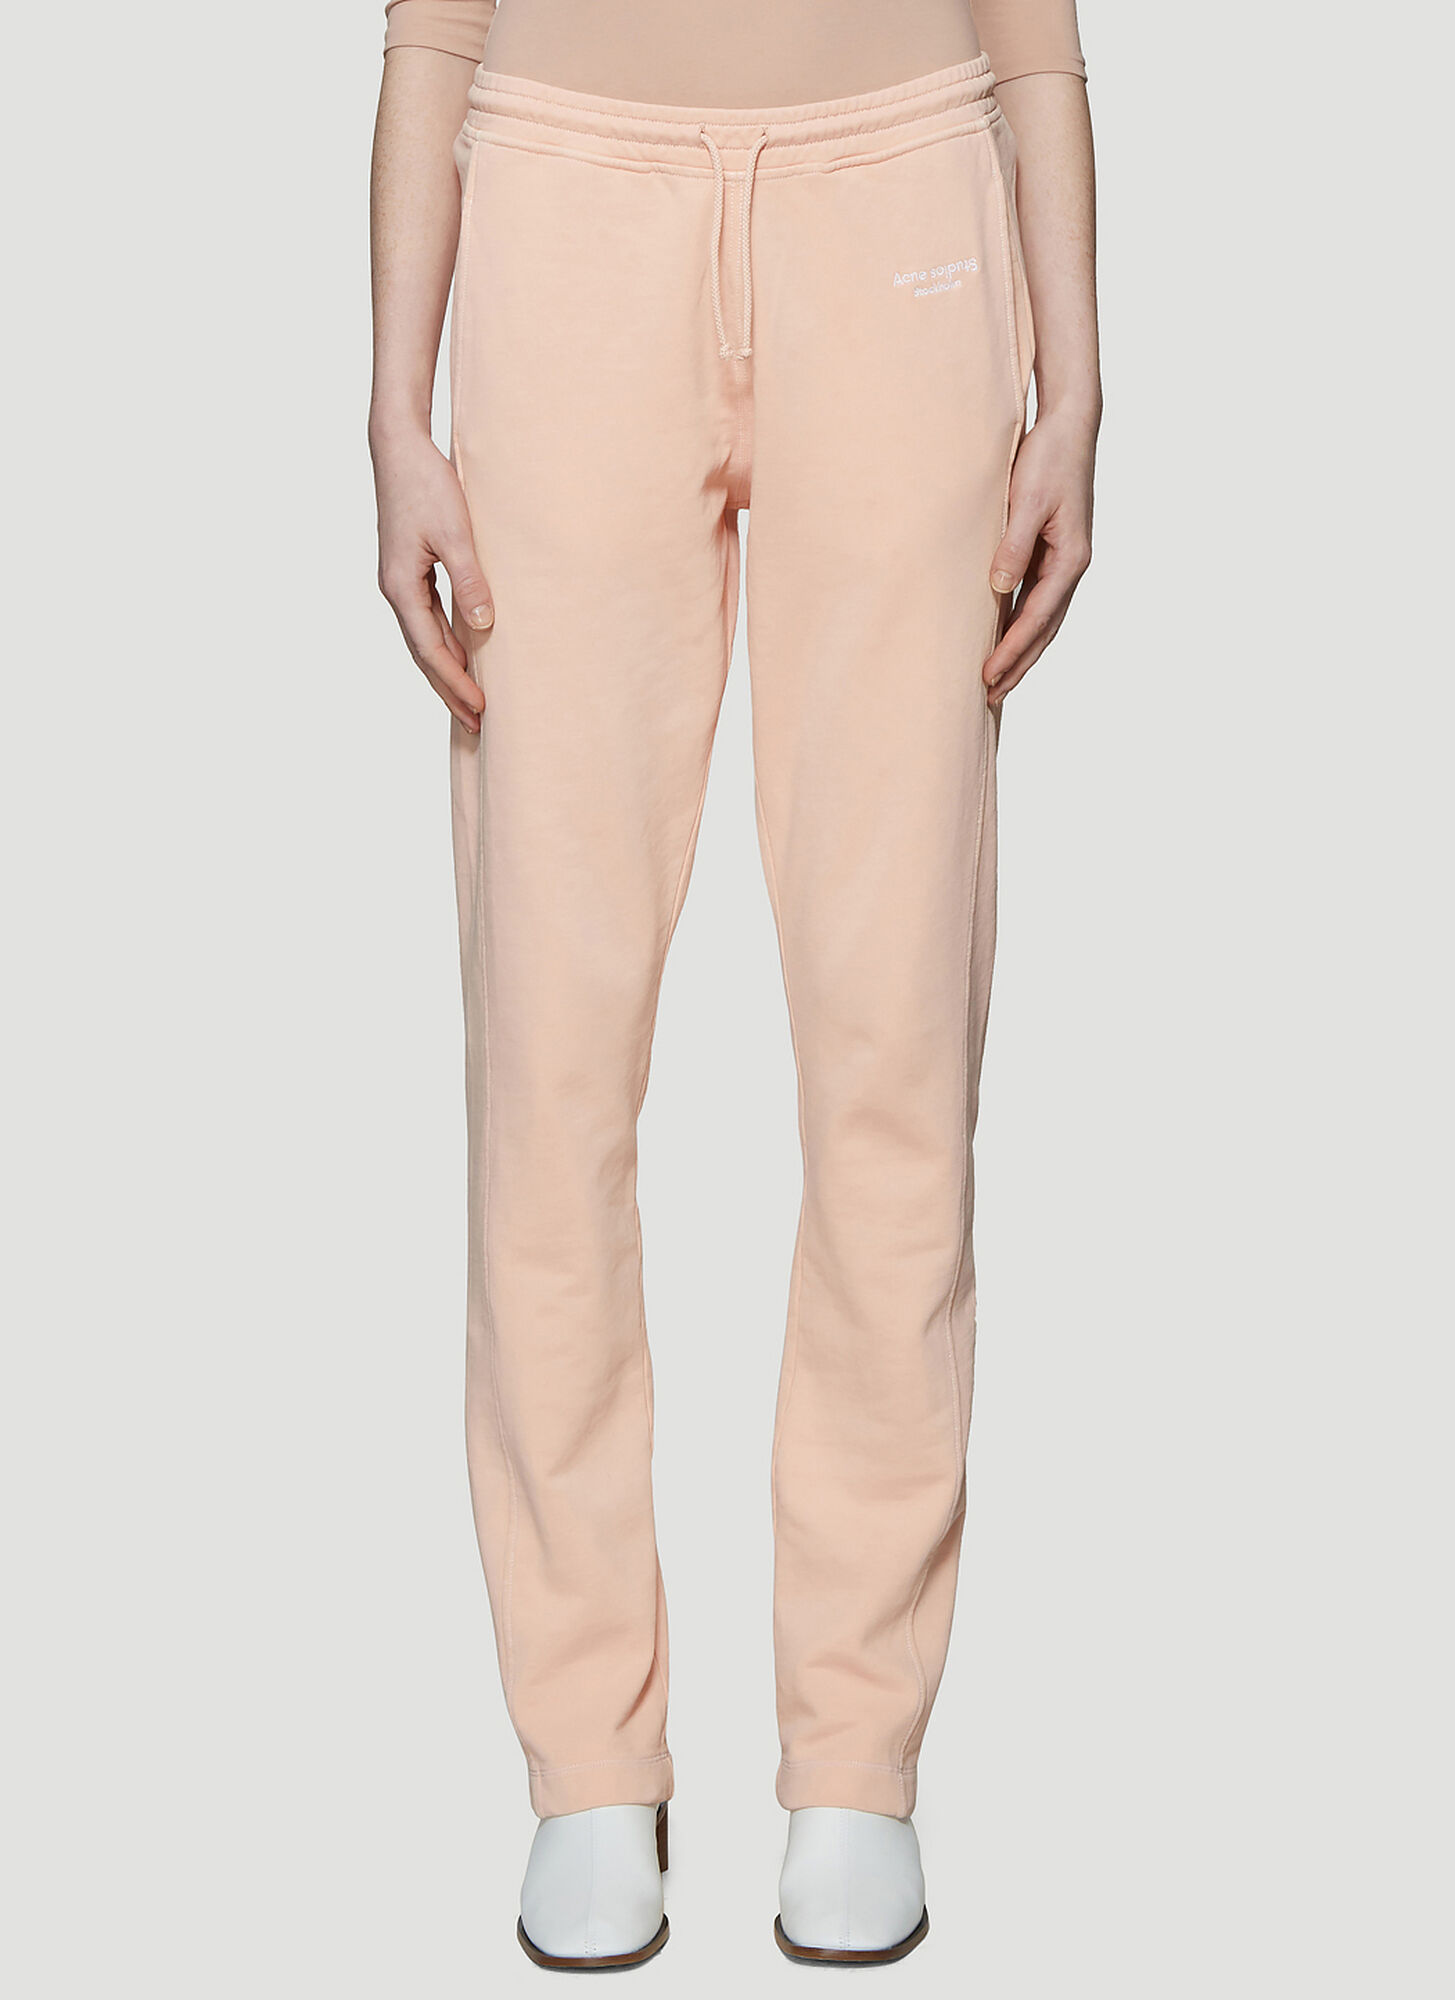 Photo of Acne Studios Track Pants in Pale Pink - Acne Studios Pants